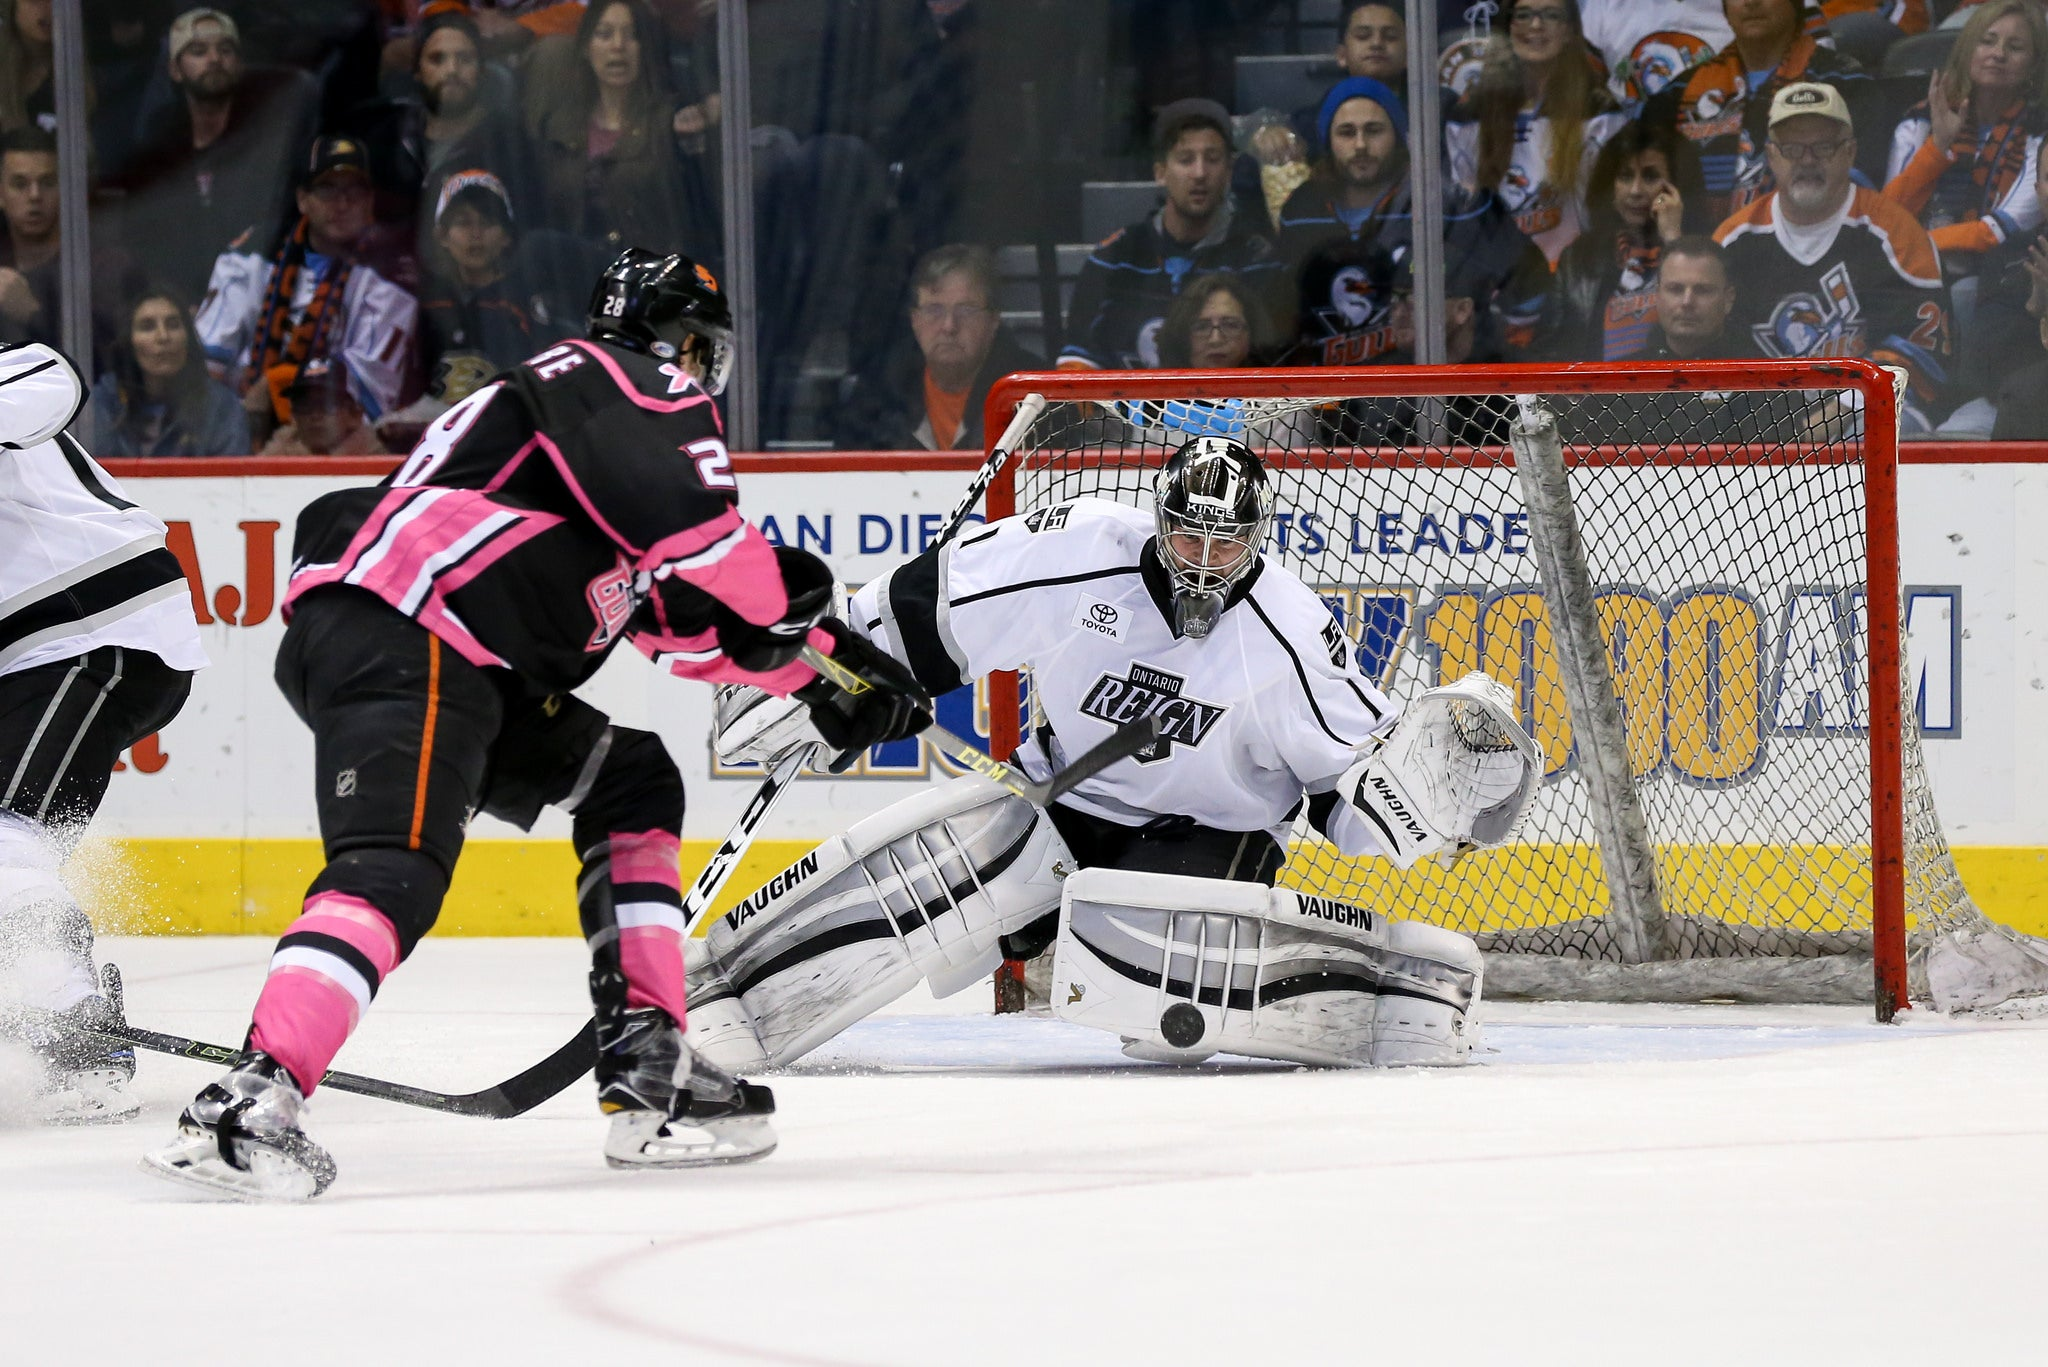 Power Play Earns Chances; Fall Short in San Diego